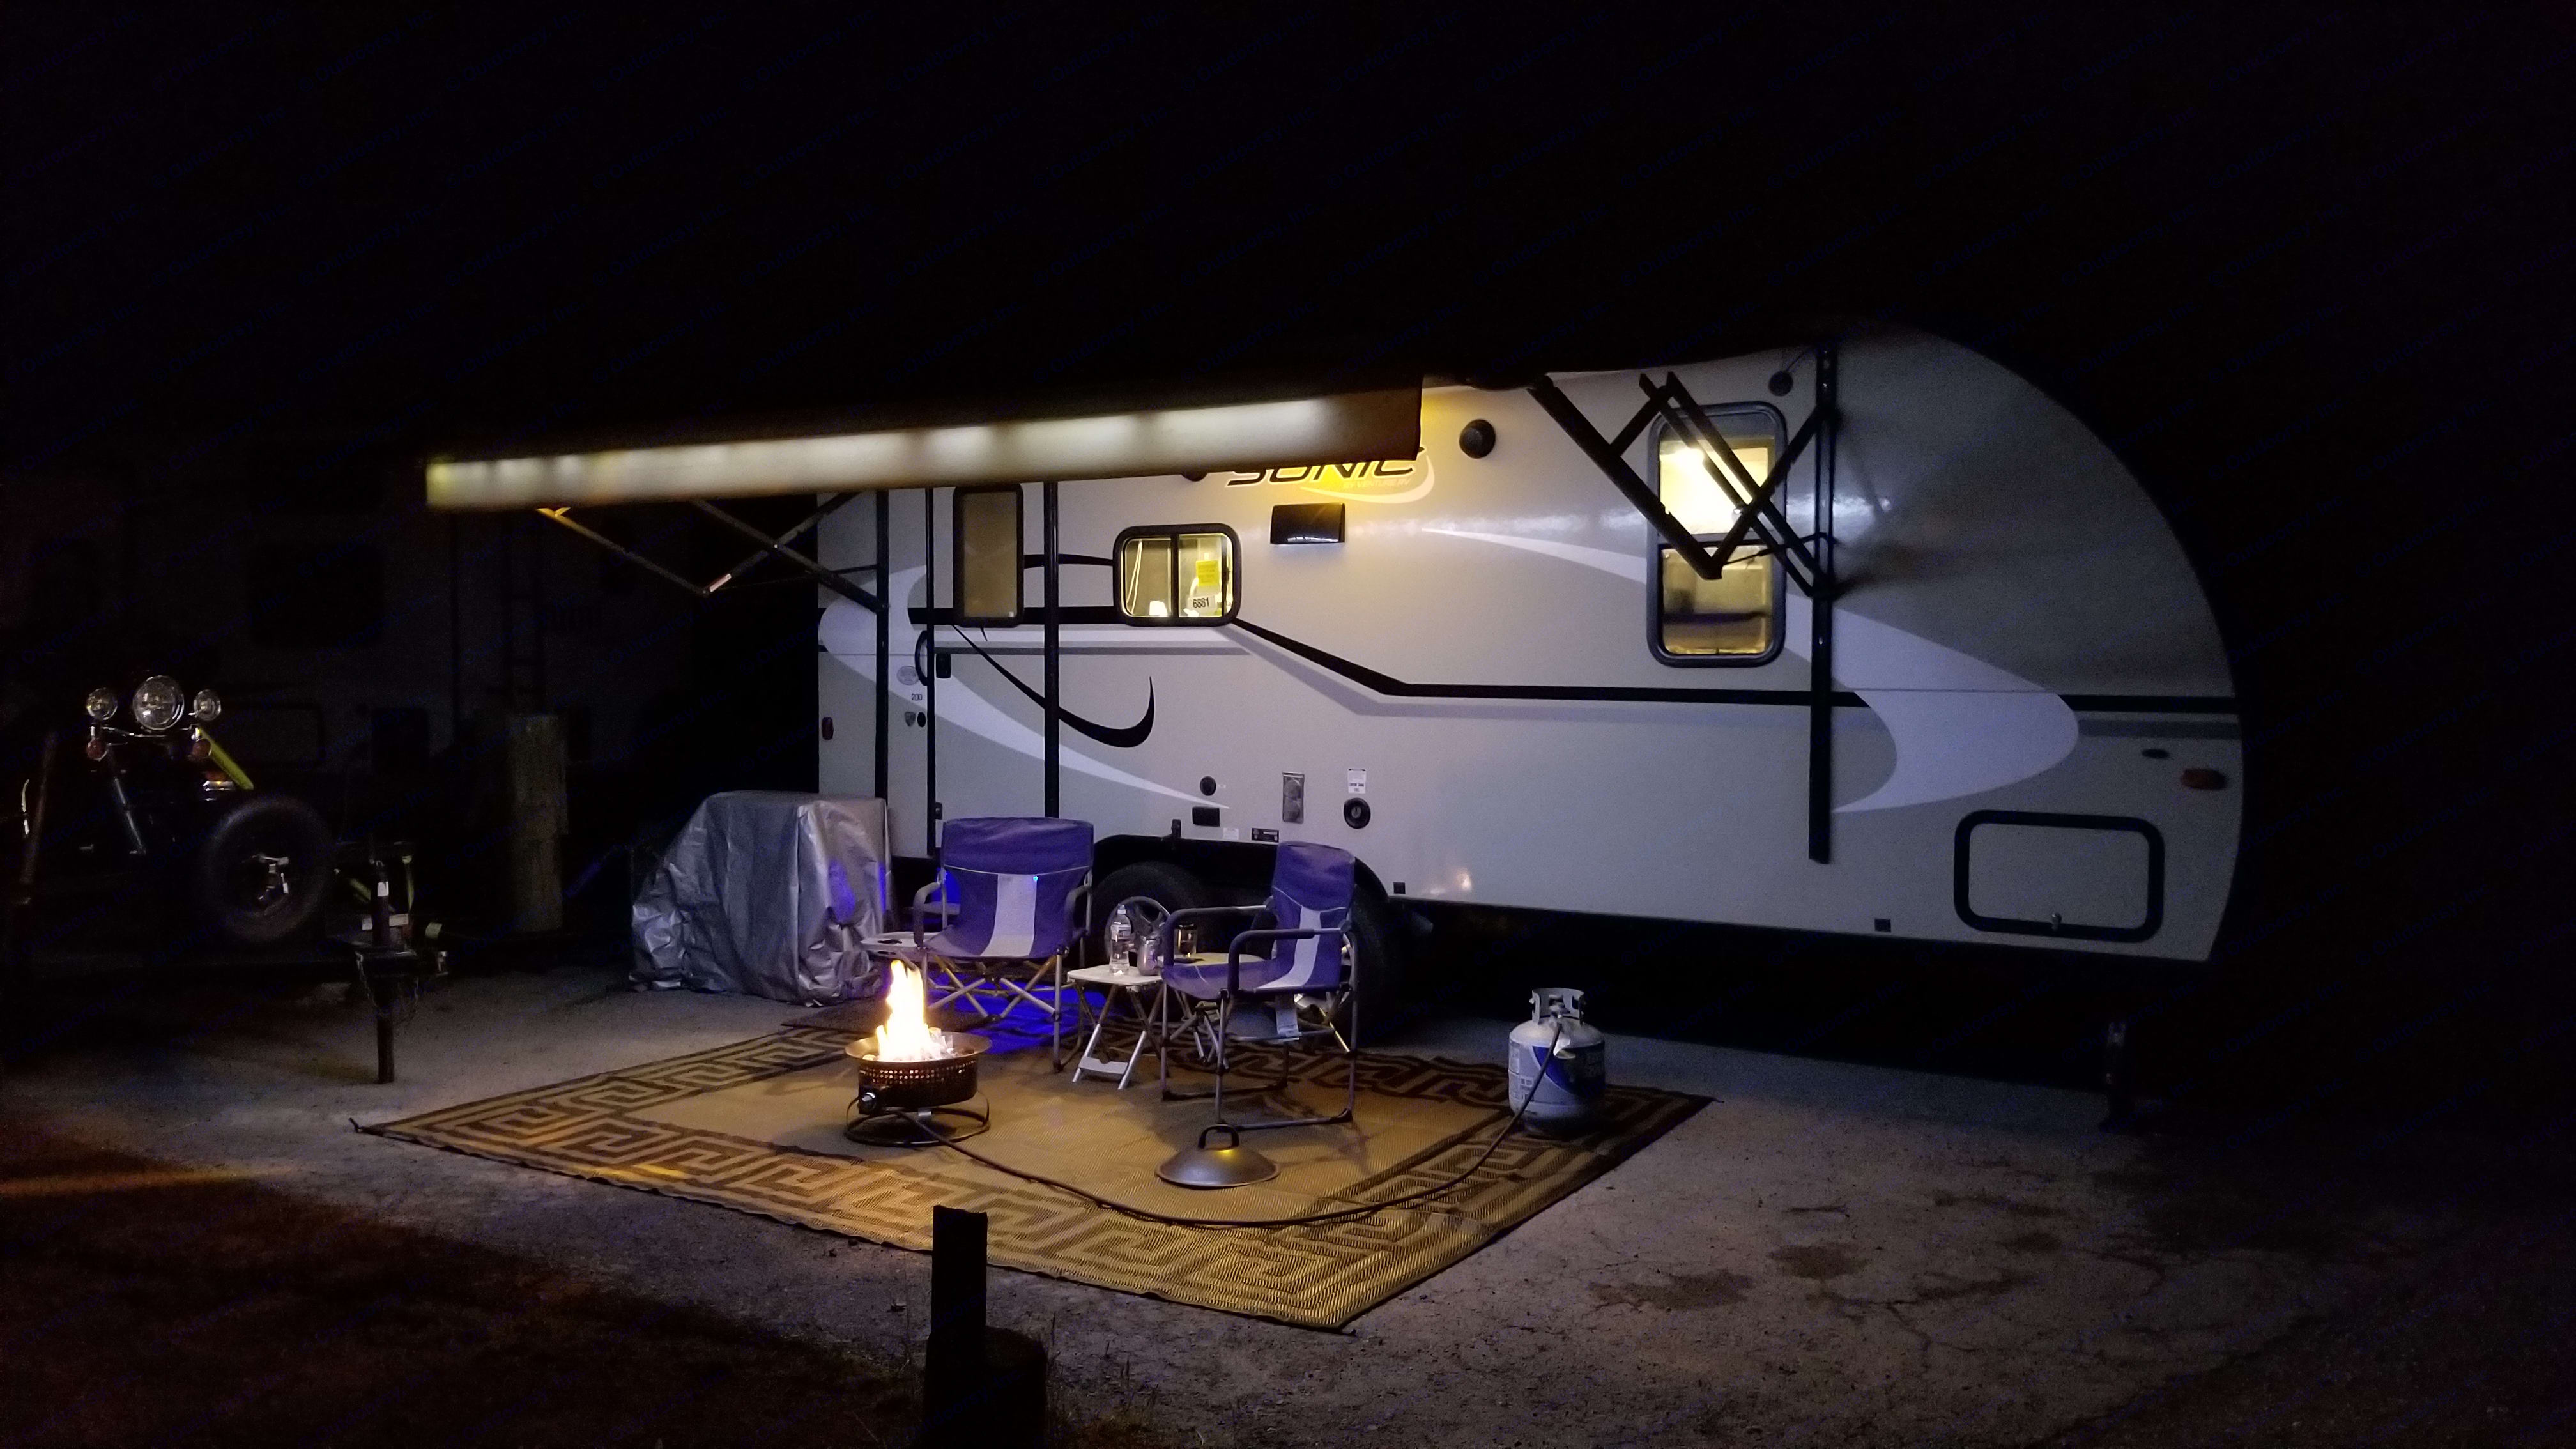 Set up, electric awning with LEDs . Venture Rv Sonic 2015